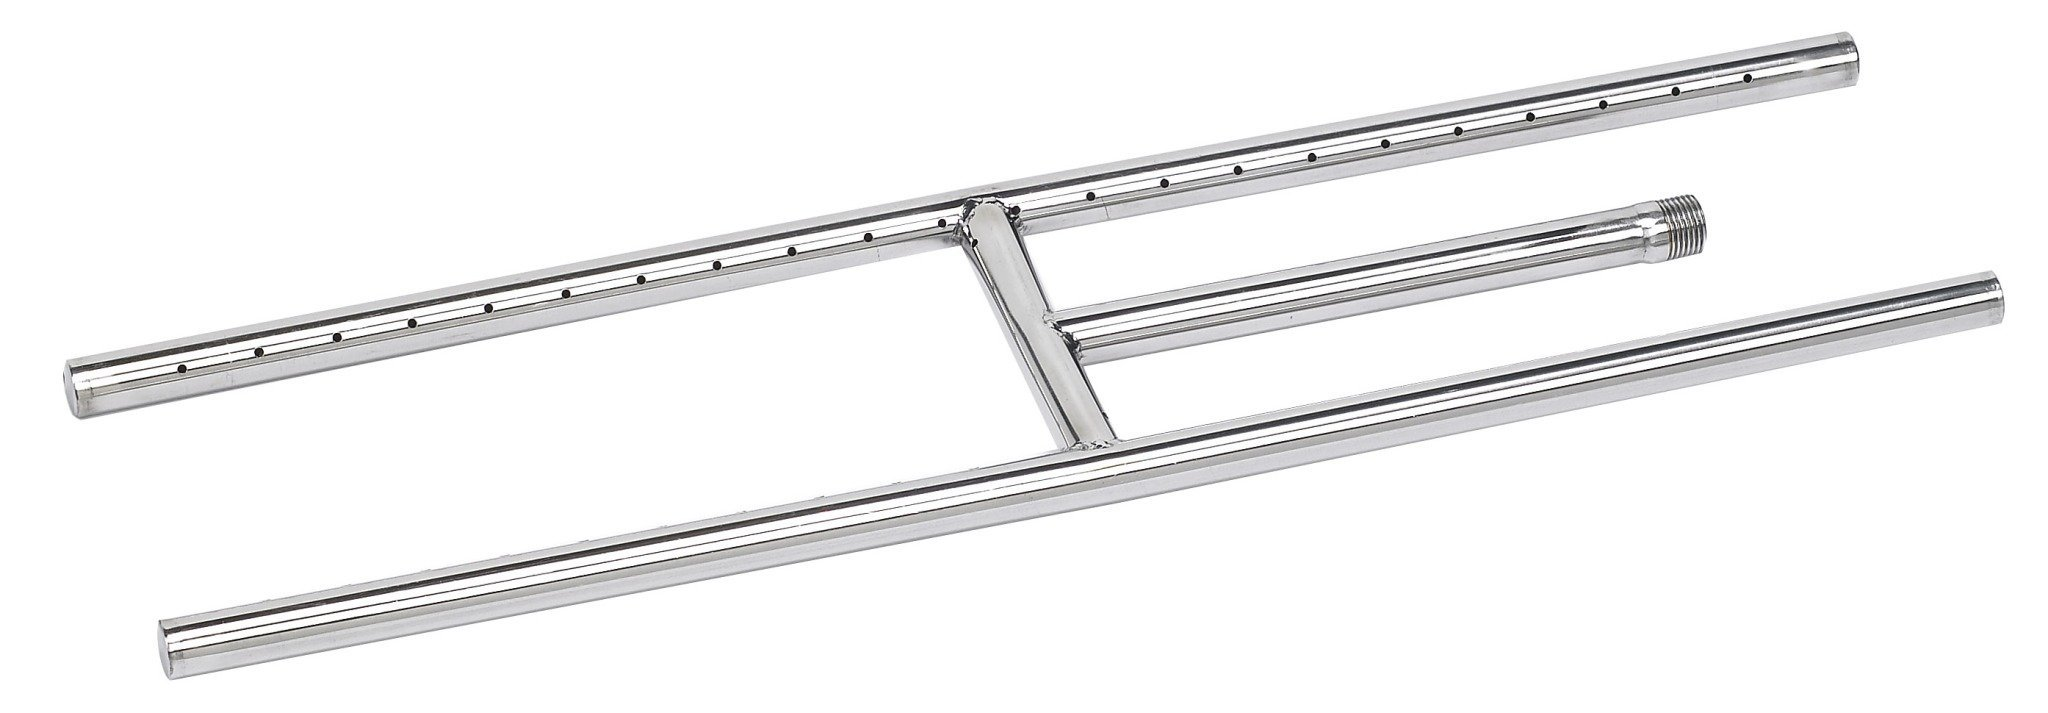 American Fire Glass SS-H-24 Stainless Steel H-Style Burner - Natural Gas, 24'' x 6'' (Renewed)